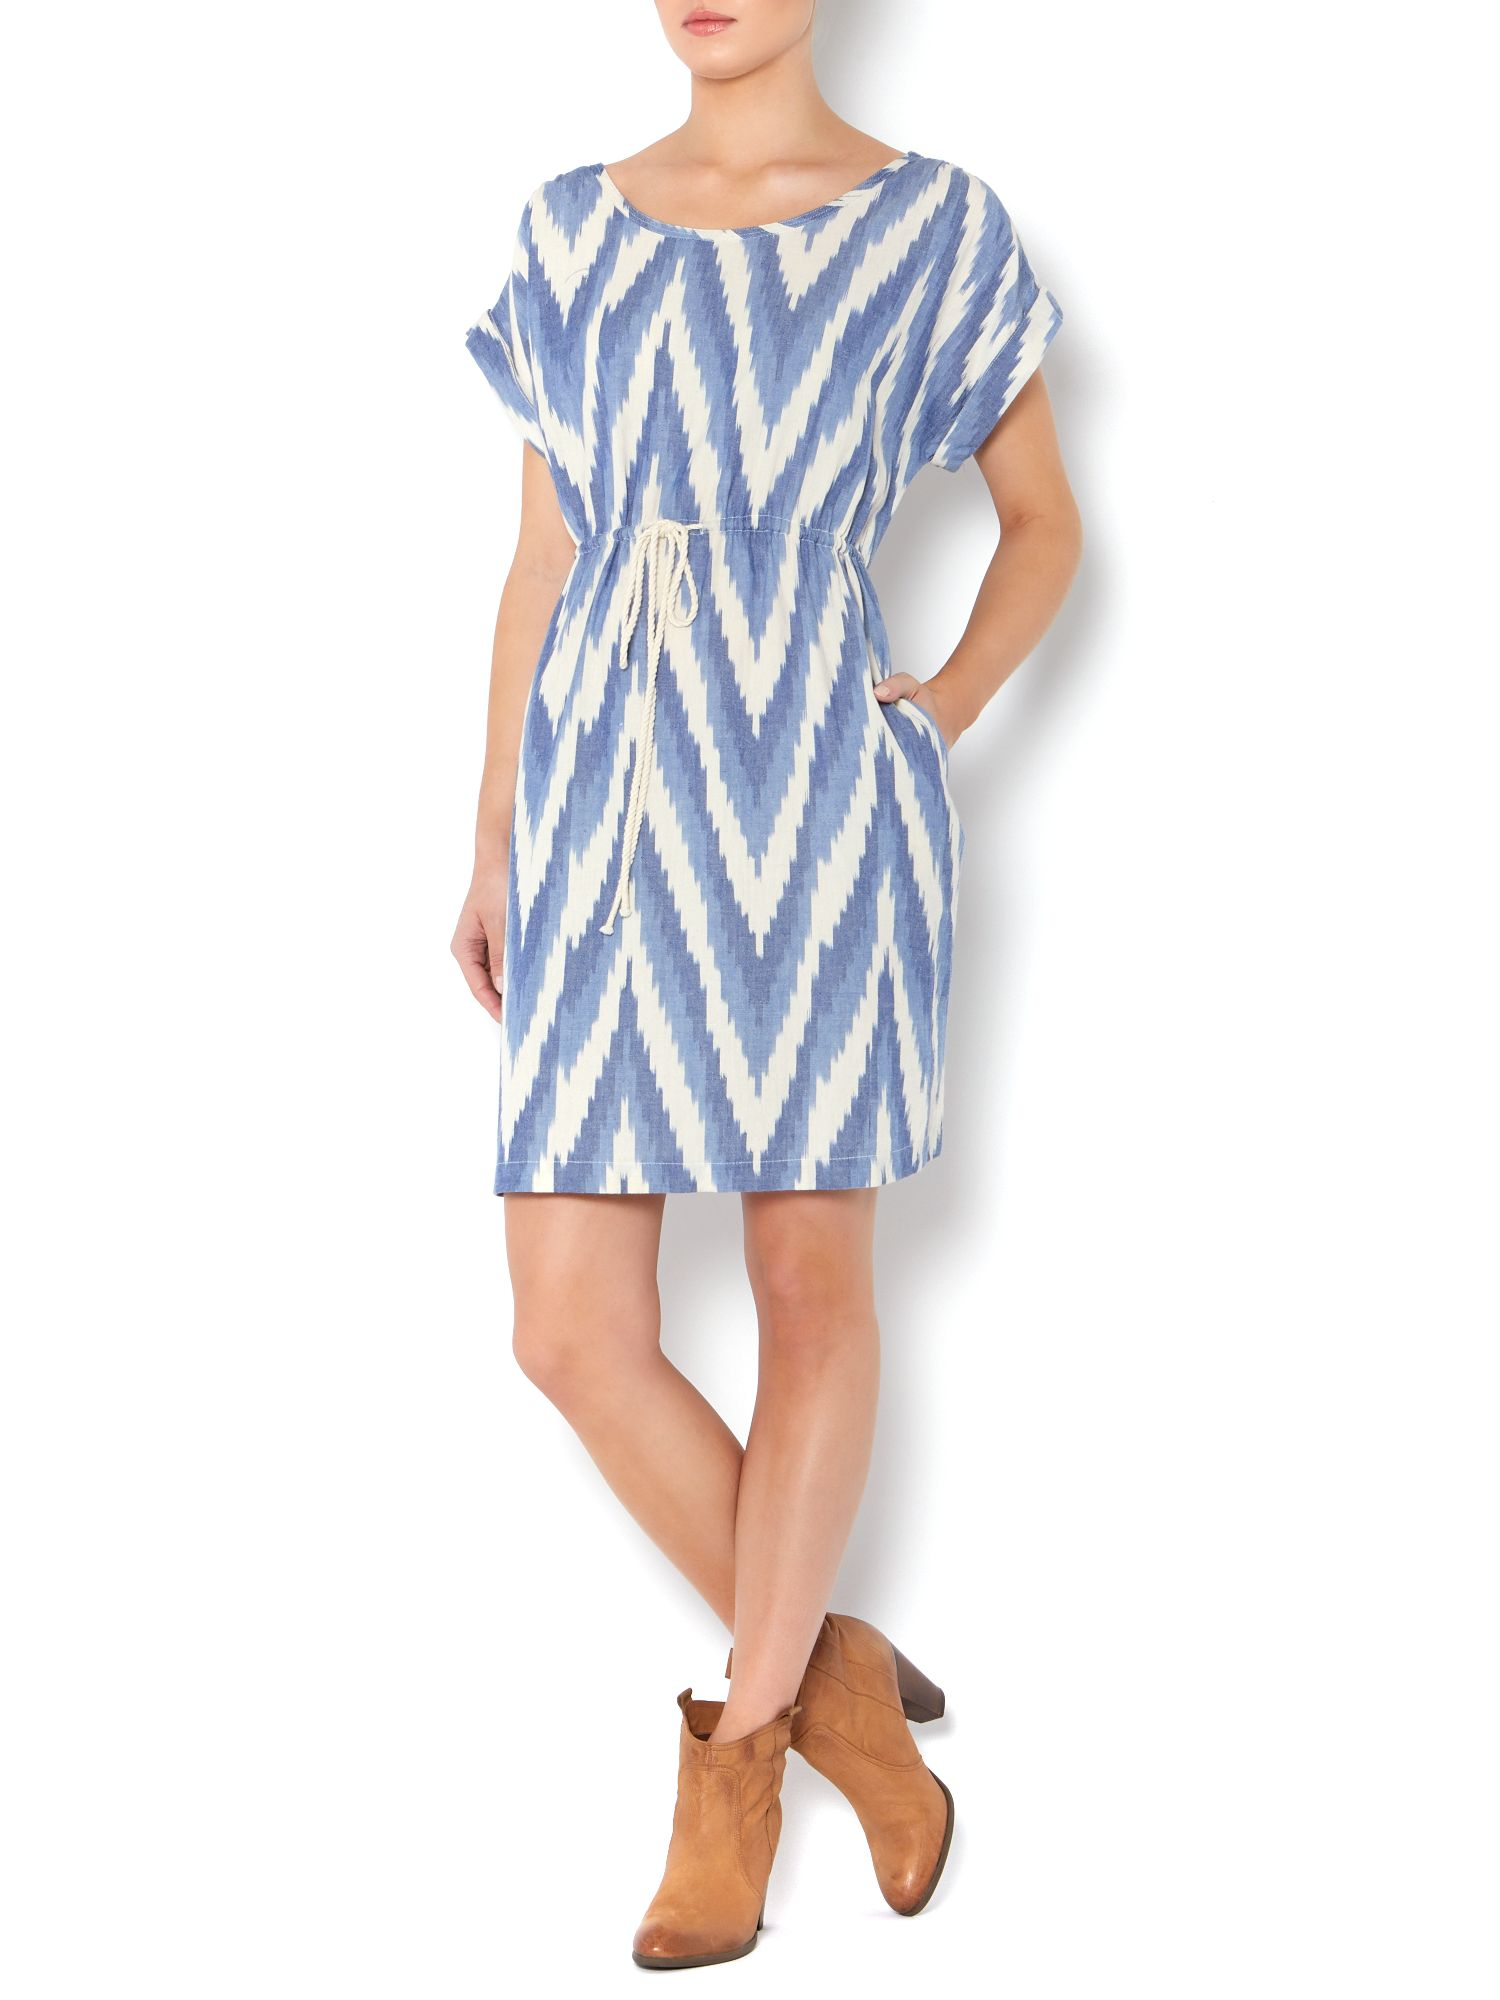 Ikat chambray dress